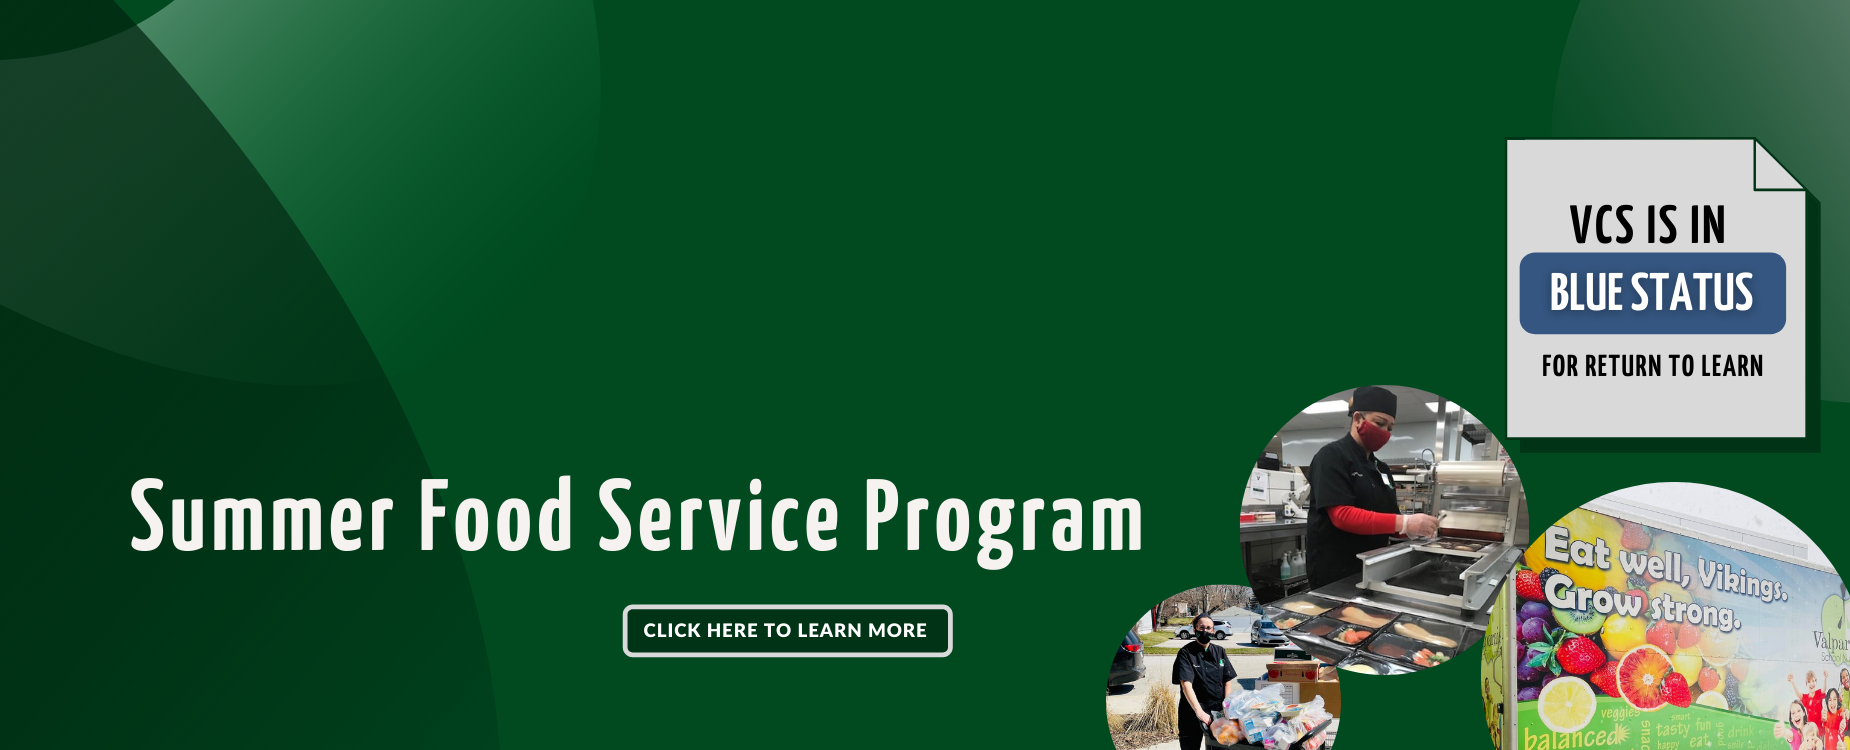 Click here to learn more about the Summer Food Service Program